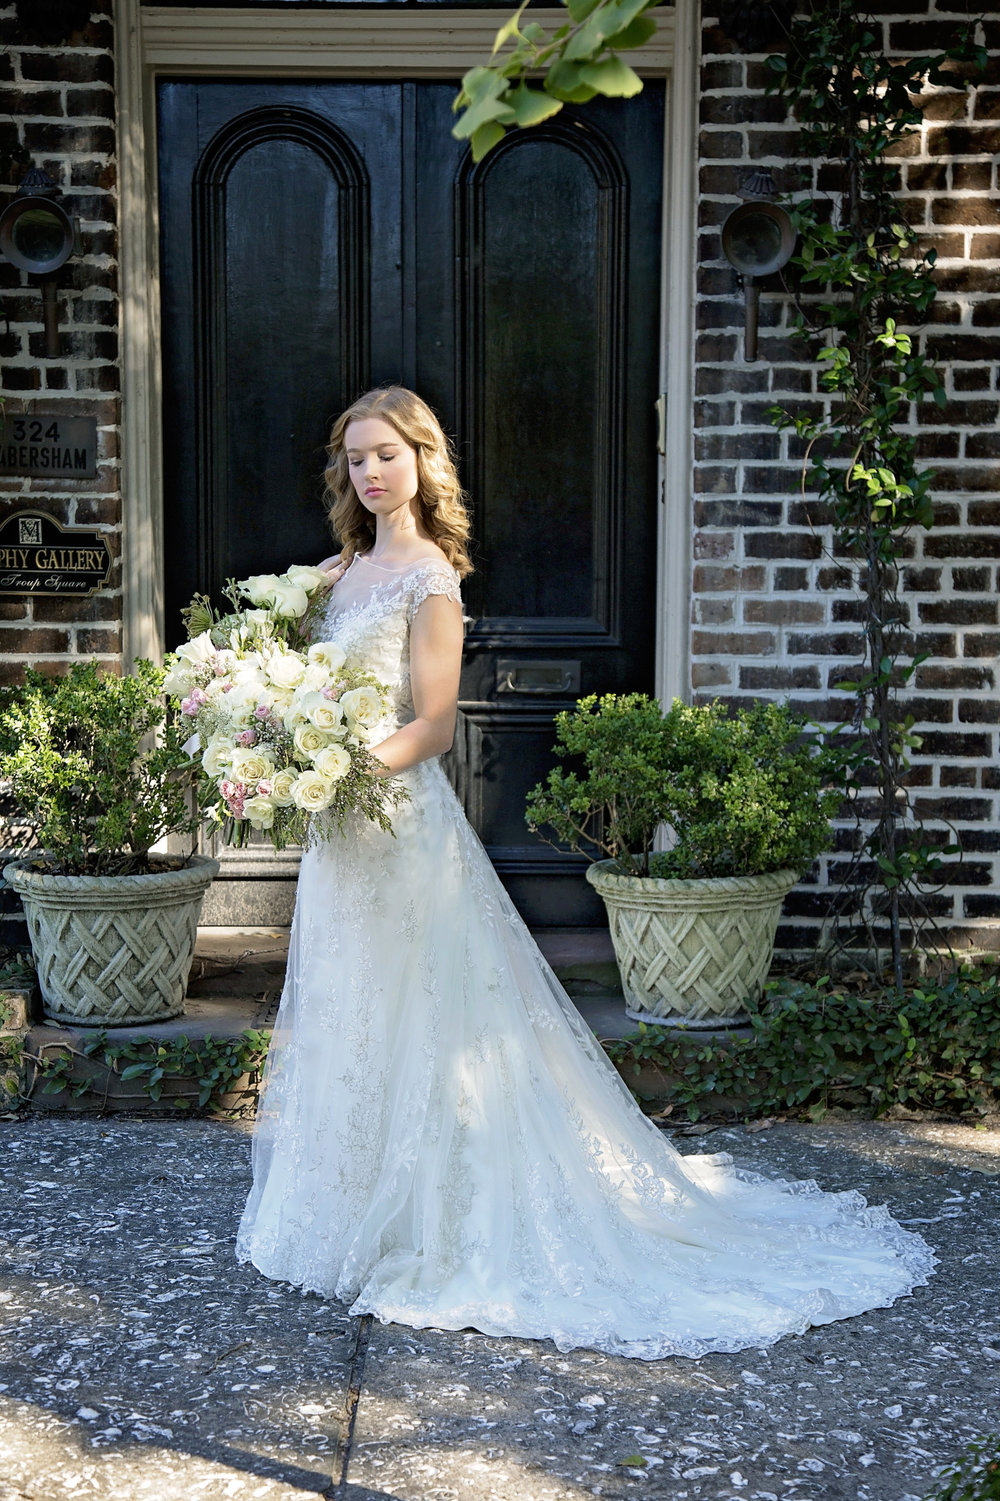 rustik-image-photography-savannah-wedding-photographer-maggie-sottero-tami-savannah-bridal-boutique-ivory-and-beau-bridal-boutique-savannah-wedding-florist-savannah-bridal-shop-savannah-weddings-savannah-gowns-6.jpg